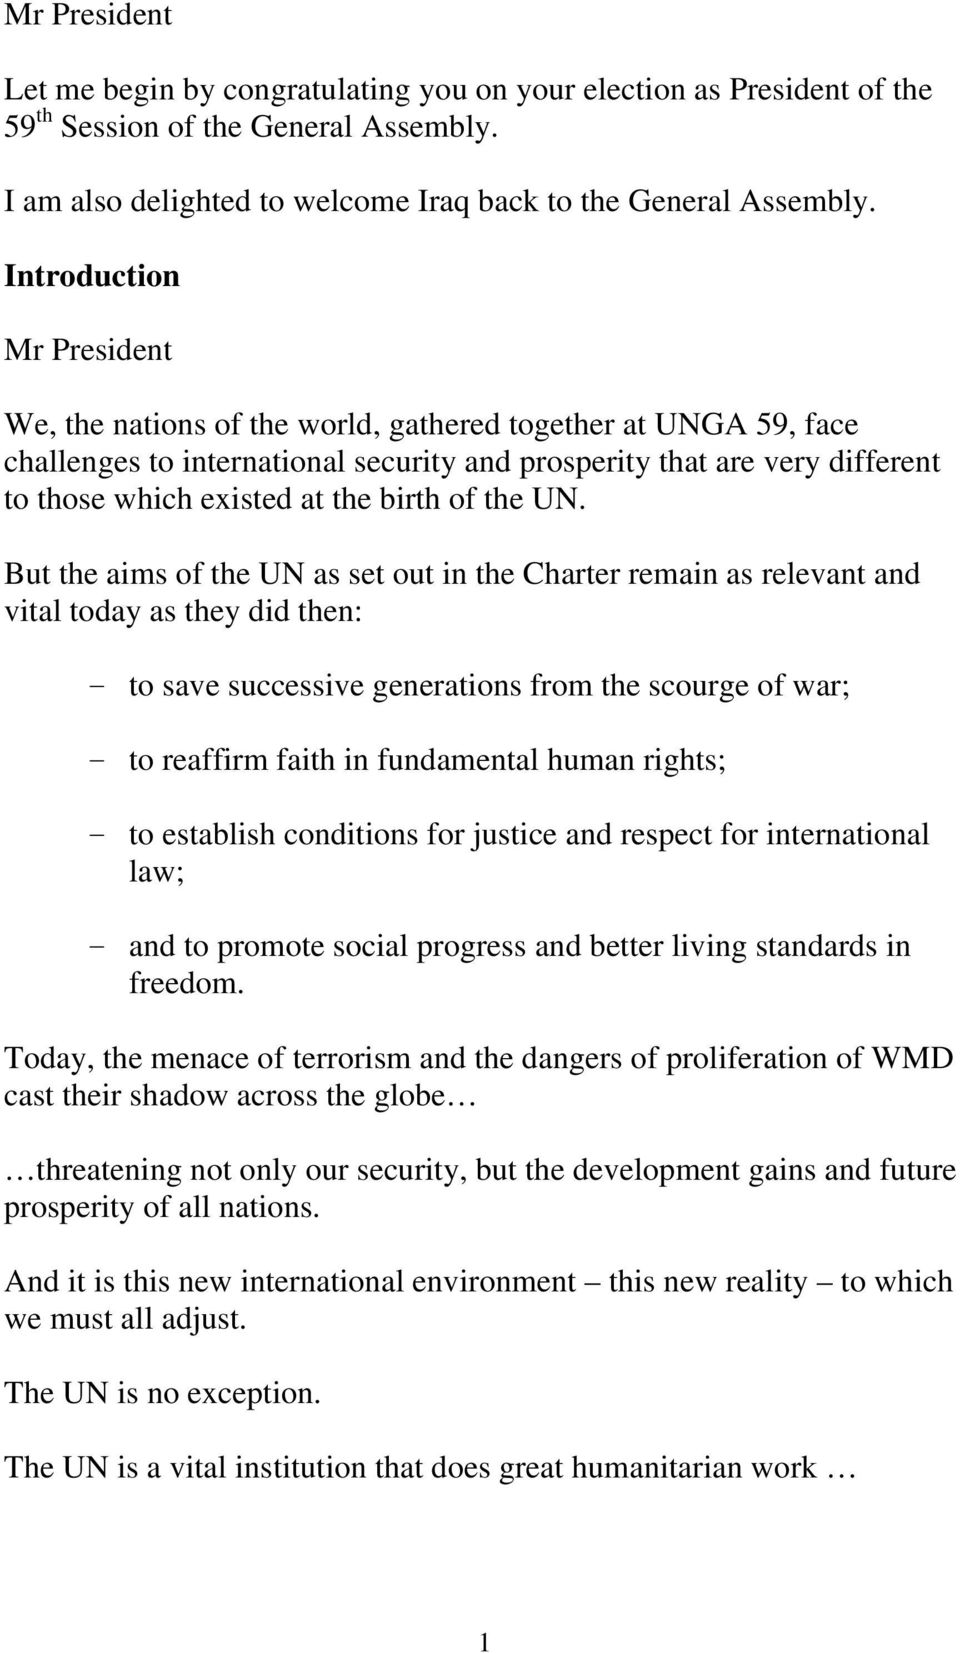 But the aims of the UN as set out in the Charter remain as relevant and vital today as they did then: - to save successive generations from the scourge of war; - to reaffirm faith in fundamental